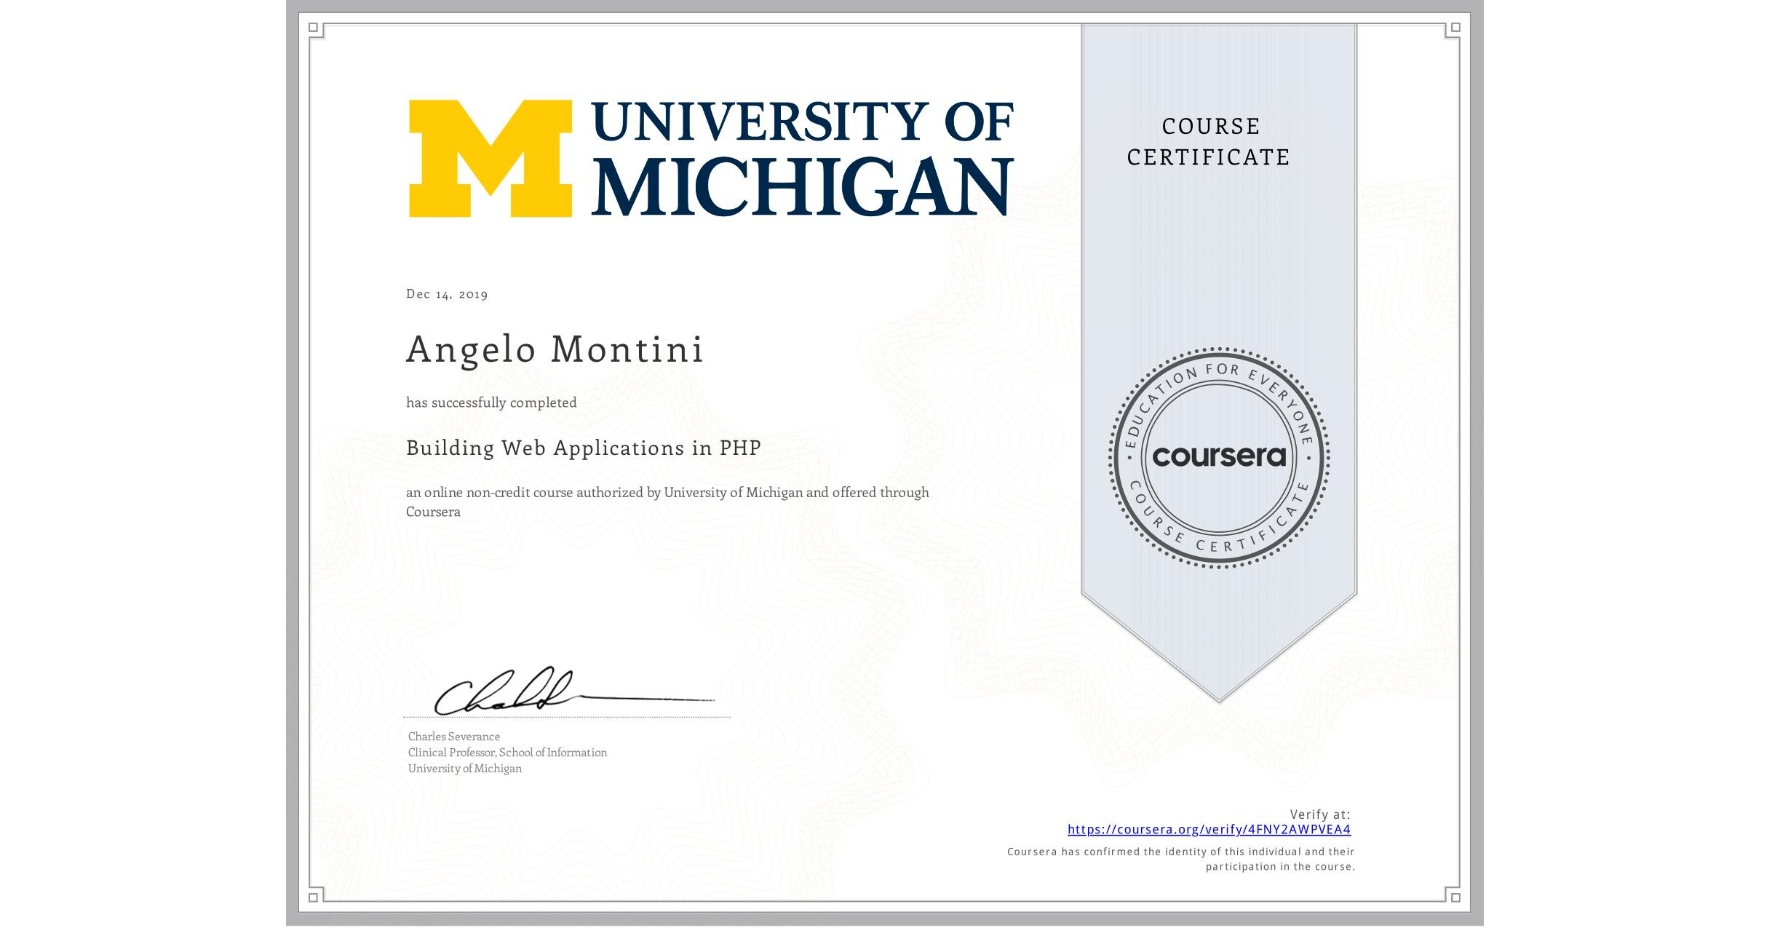 View certificate for Angelo Montini, Building Web Applications in PHP, an online non-credit course authorized by University of Michigan and offered through Coursera